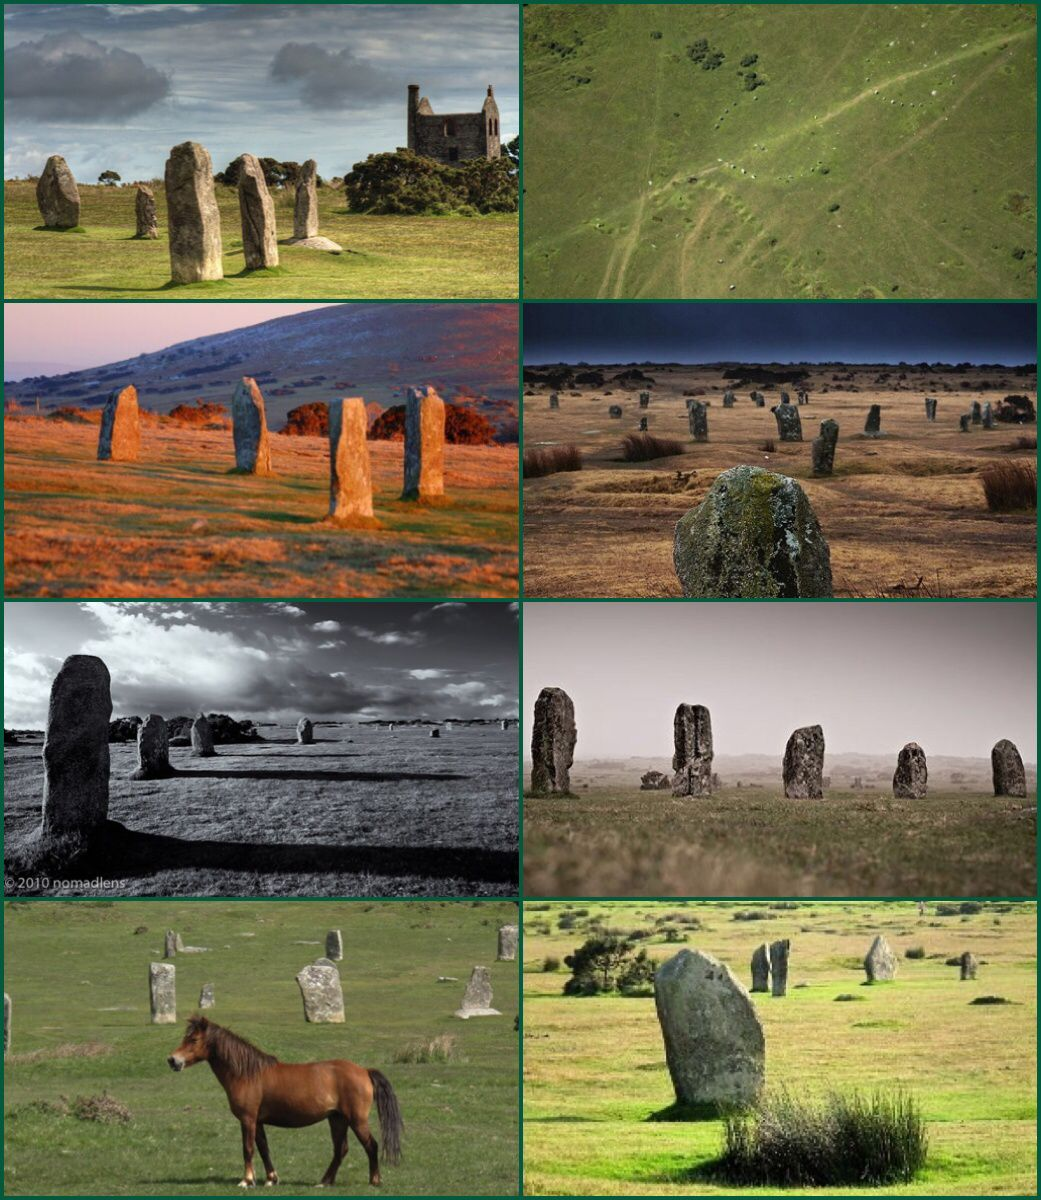 The hurlers cornish an hurlysi is a group of three stone circles